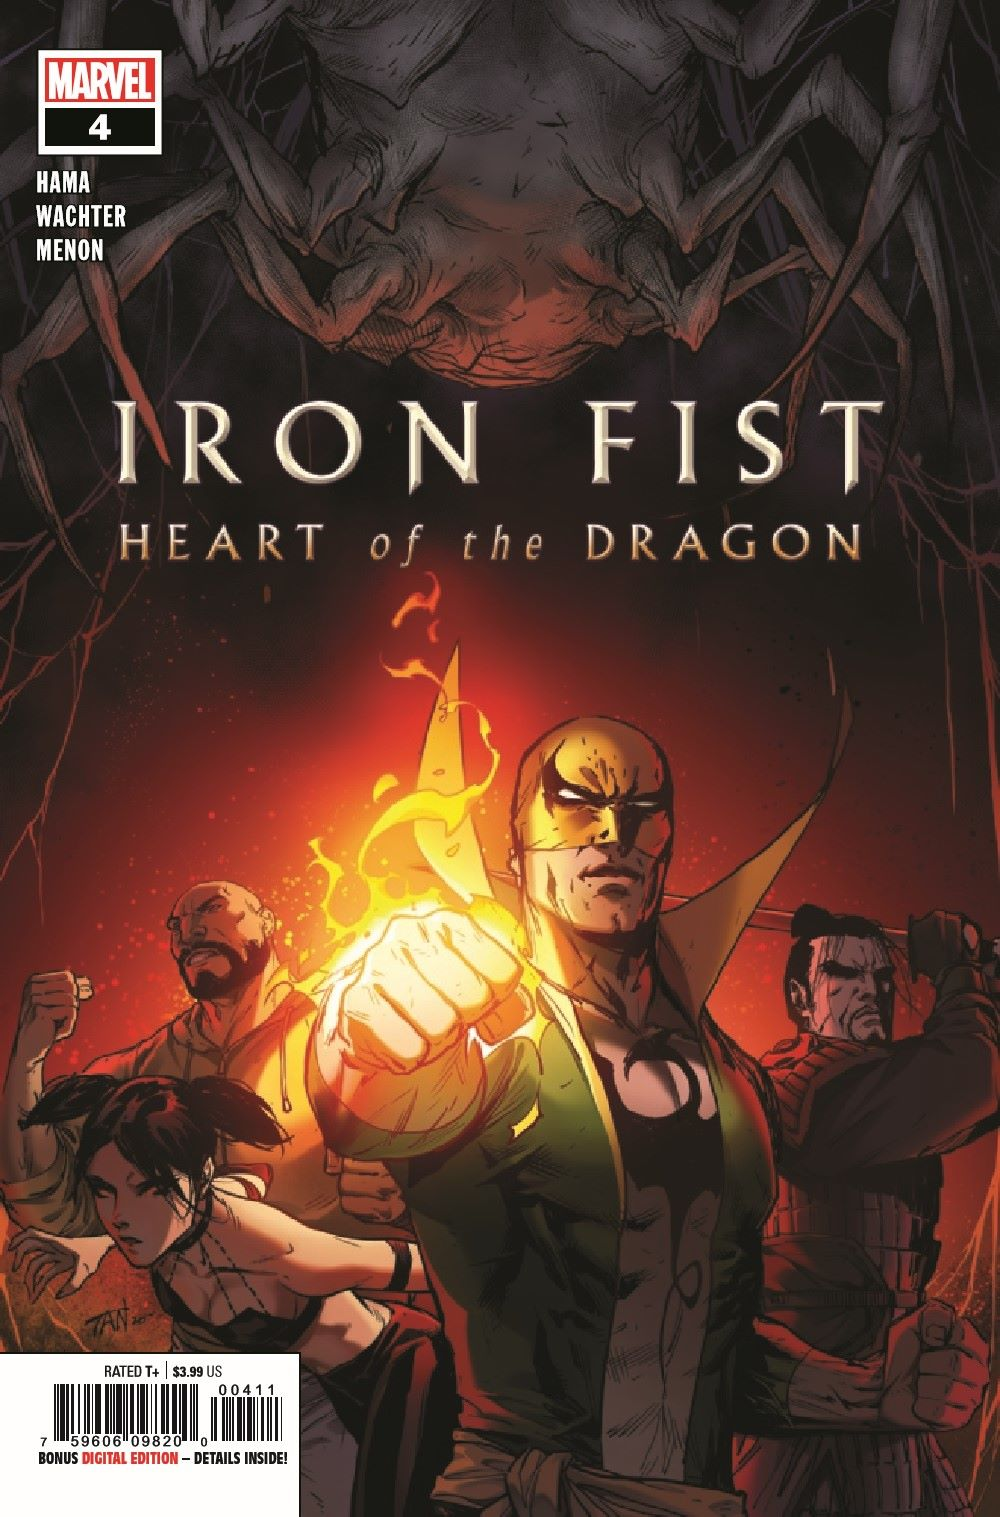 IRONFISTHOD2021004_Preview-1 ComicList Previews: IRON FIST HEART OF THE DRAGON #4 (OF 6)